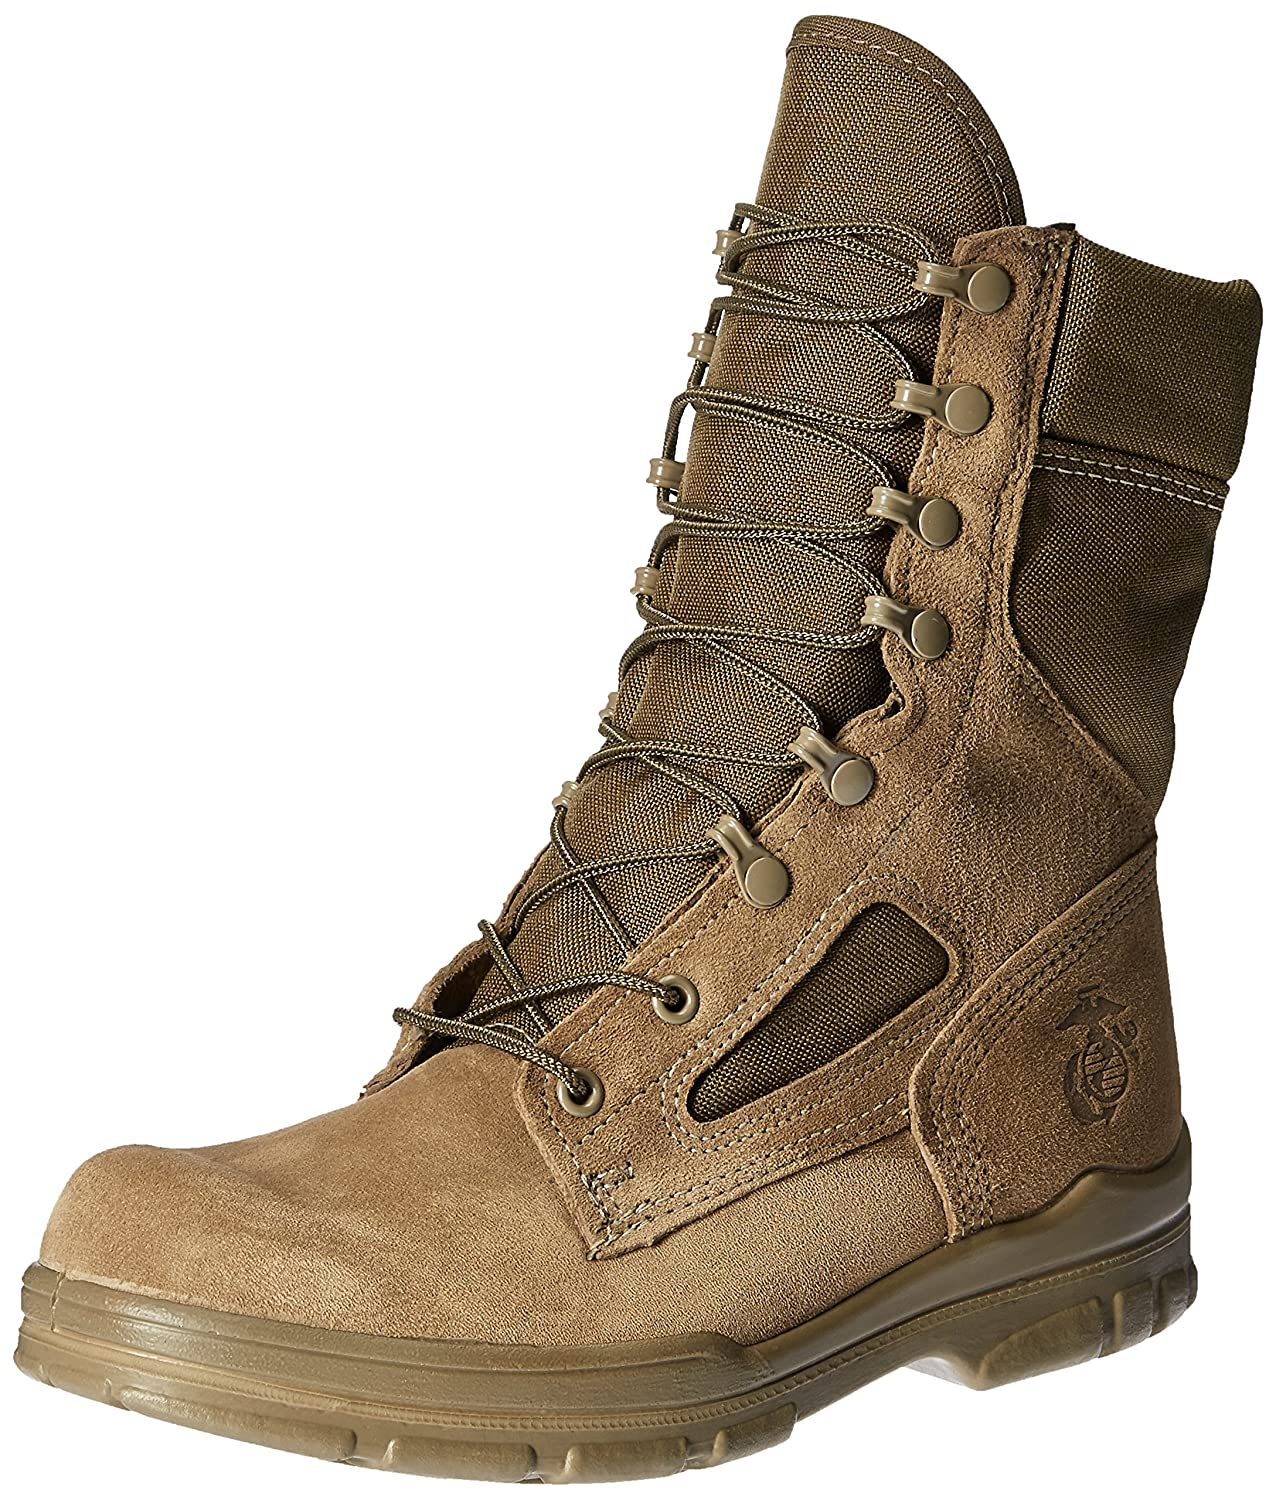 sale retailer 058a0 26155 Bates Men's Usmc Lightweight Durashocks Military and Tactical Boot